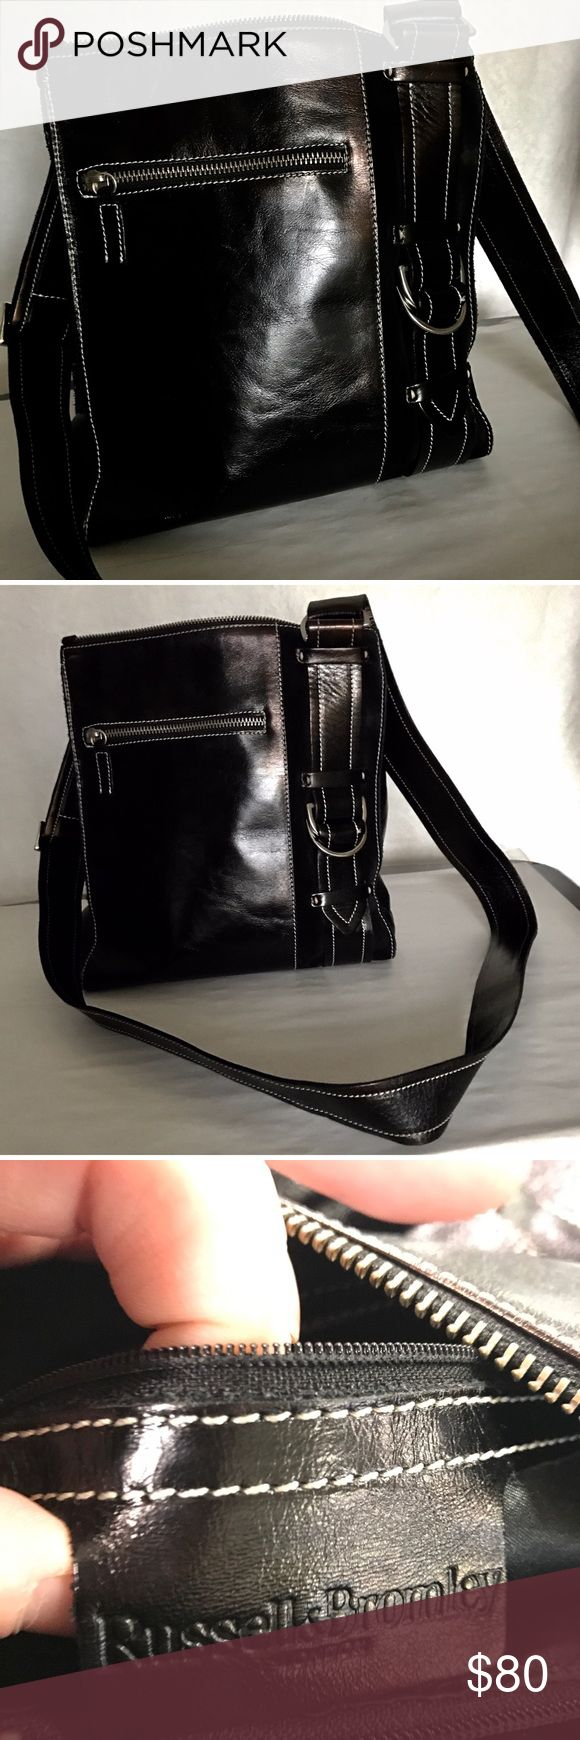 Russell & Bromley cross body purse Adorable Black cross body bag. Zipper and buckle detail on front. Inside and outside of purse great condition. Authentic bag. Two zipper pocket and one open pocket inside purse. Russell & Bromley Bags Crossbody Bags